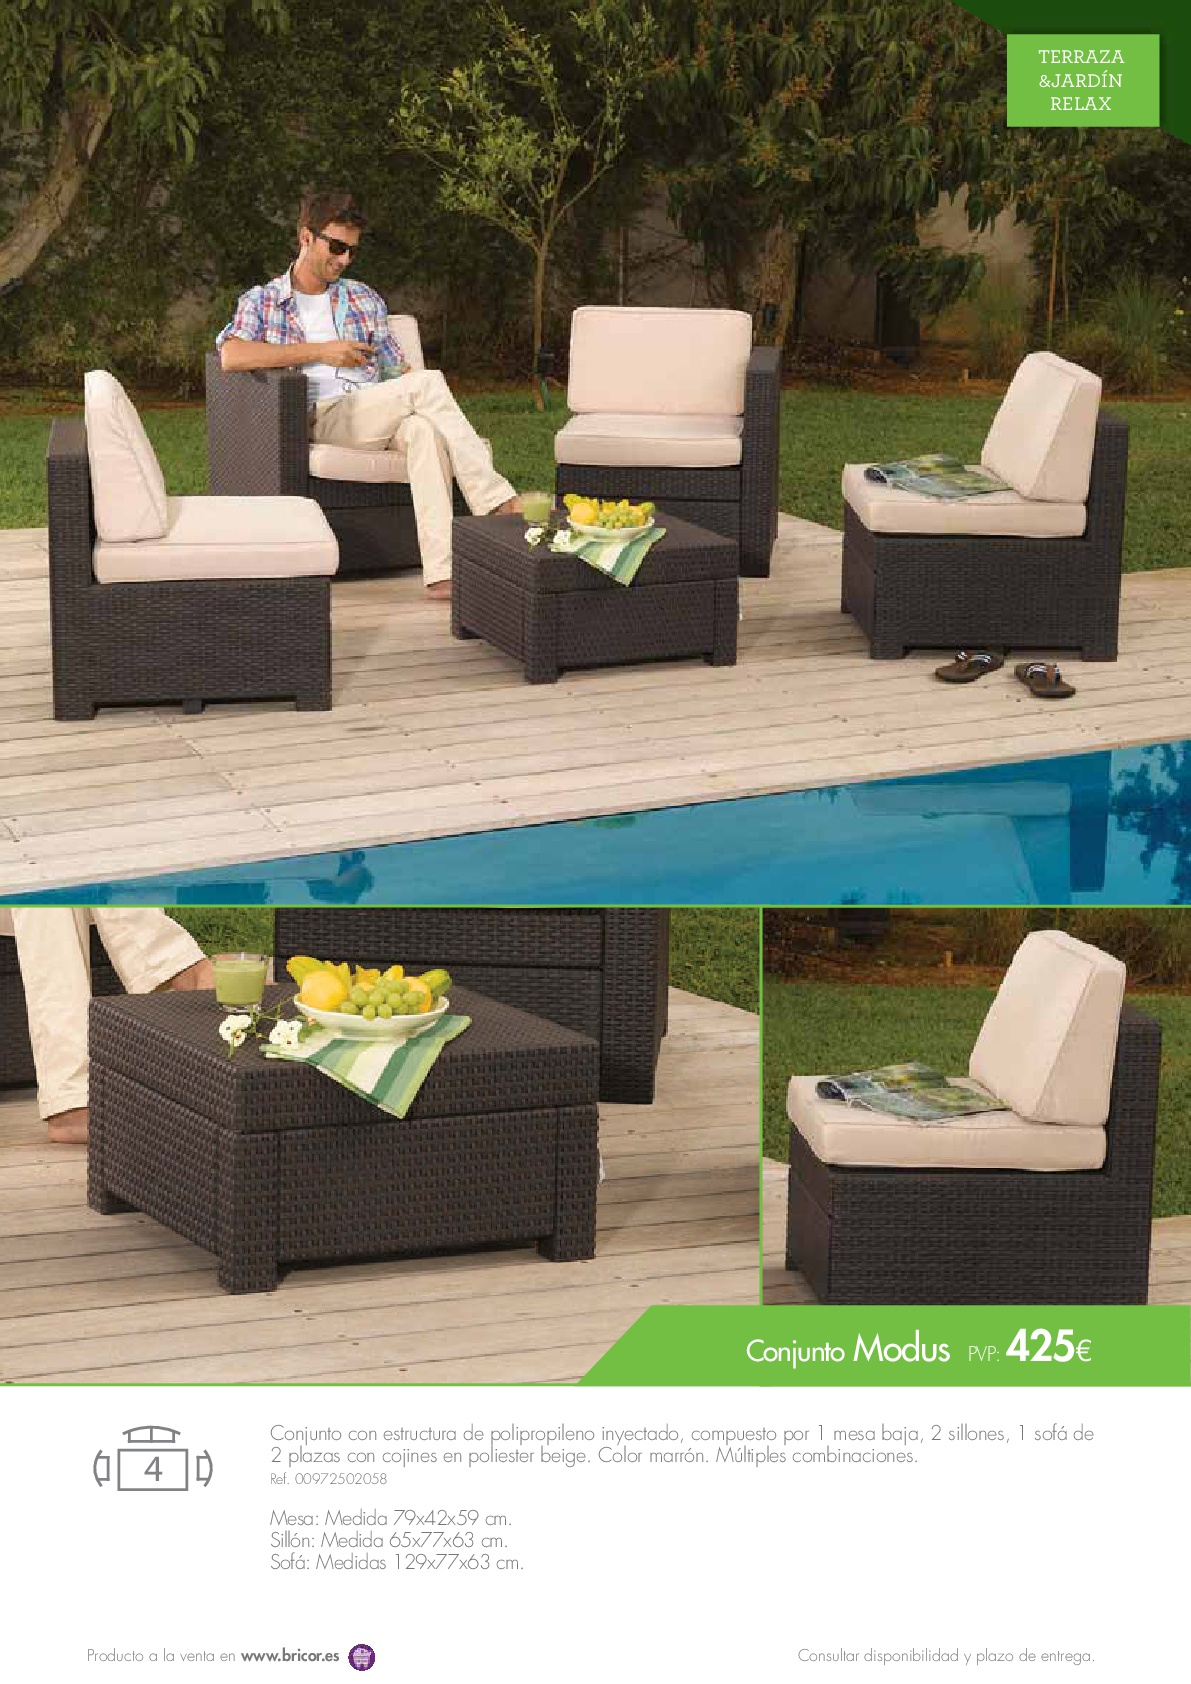 Cojines Muebles Jardin - Cojines Muebles Jardin Conjunto Ratn Sinttico Color Gris Sof [mjhdah]http://www.bricogroup.com/main/sites/default/files/galerias/mueble-jardin-10.jpg